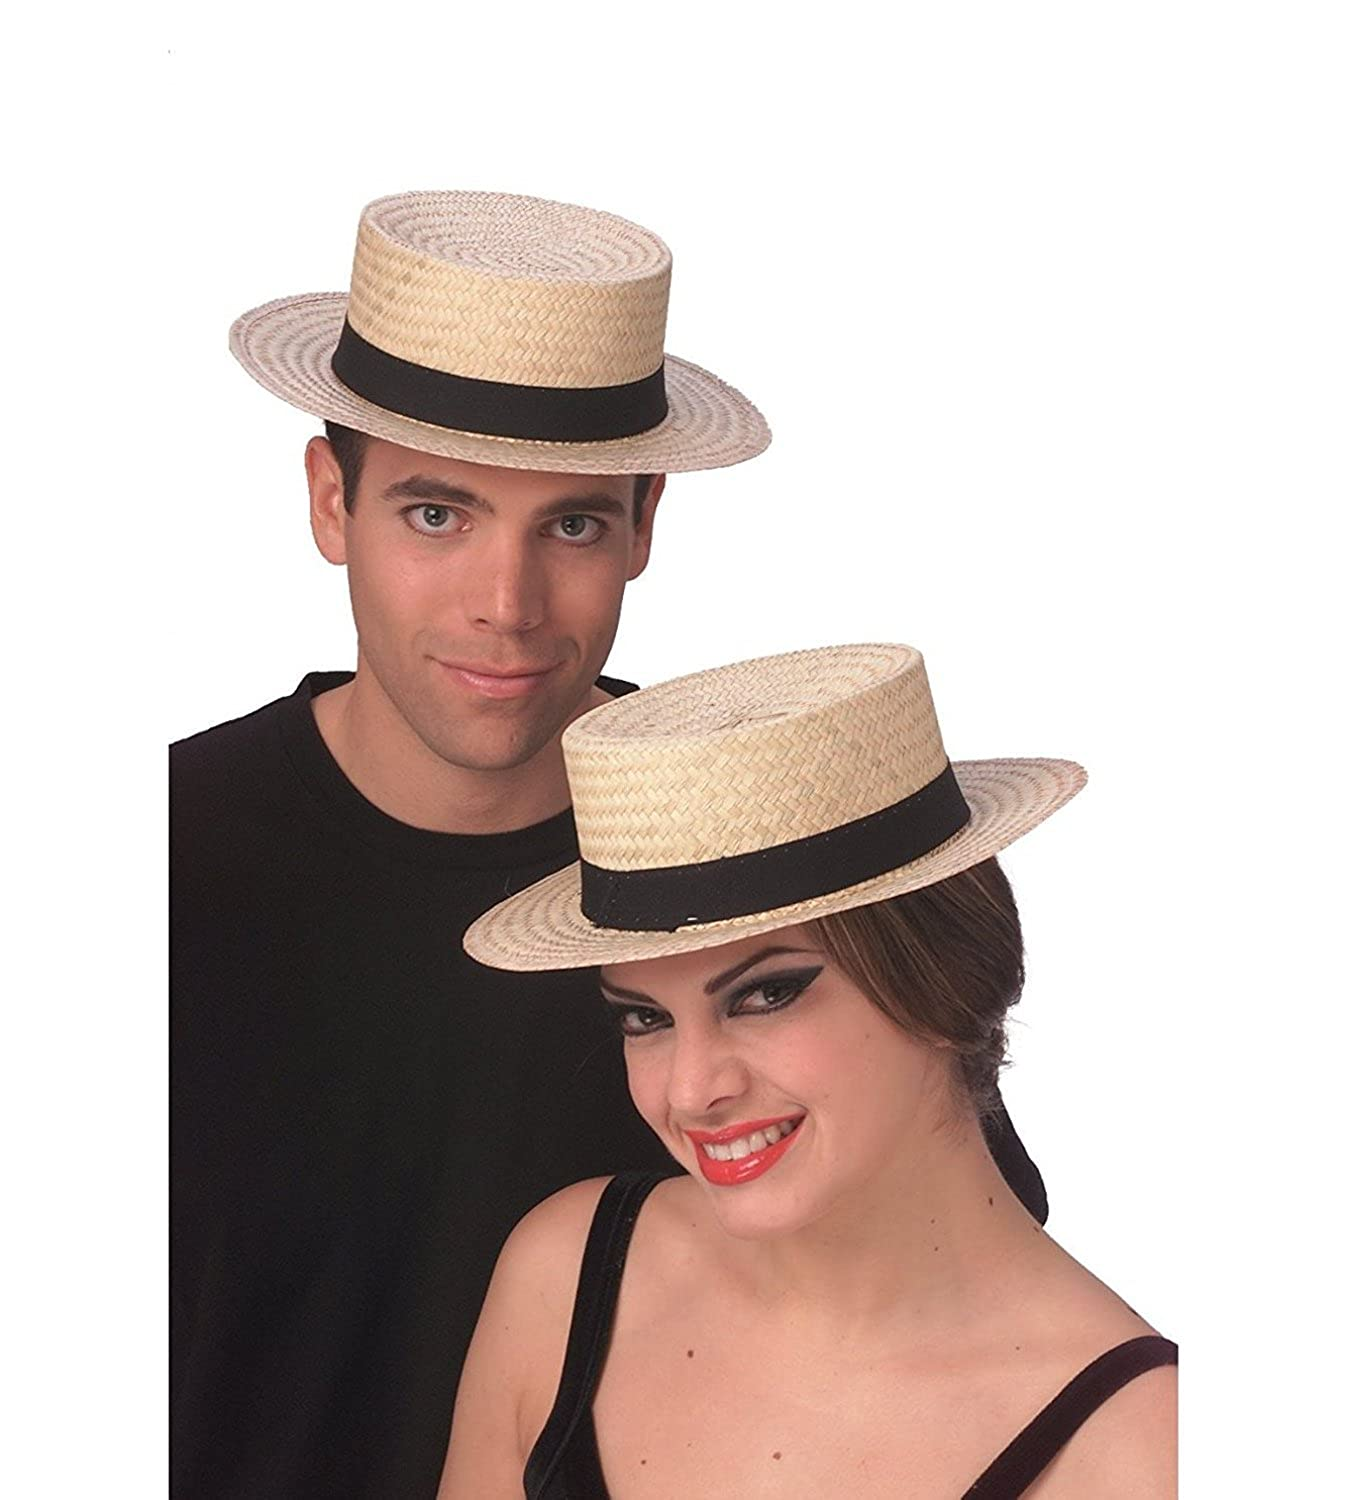 1920s Mens Hats & Caps | Gatsby, Peaky Blinders, Gangster Rubies Straw Sailor Hat Skimmer Boater Amish Costume Accessory Hat Medium Large $41.95 AT vintagedancer.com